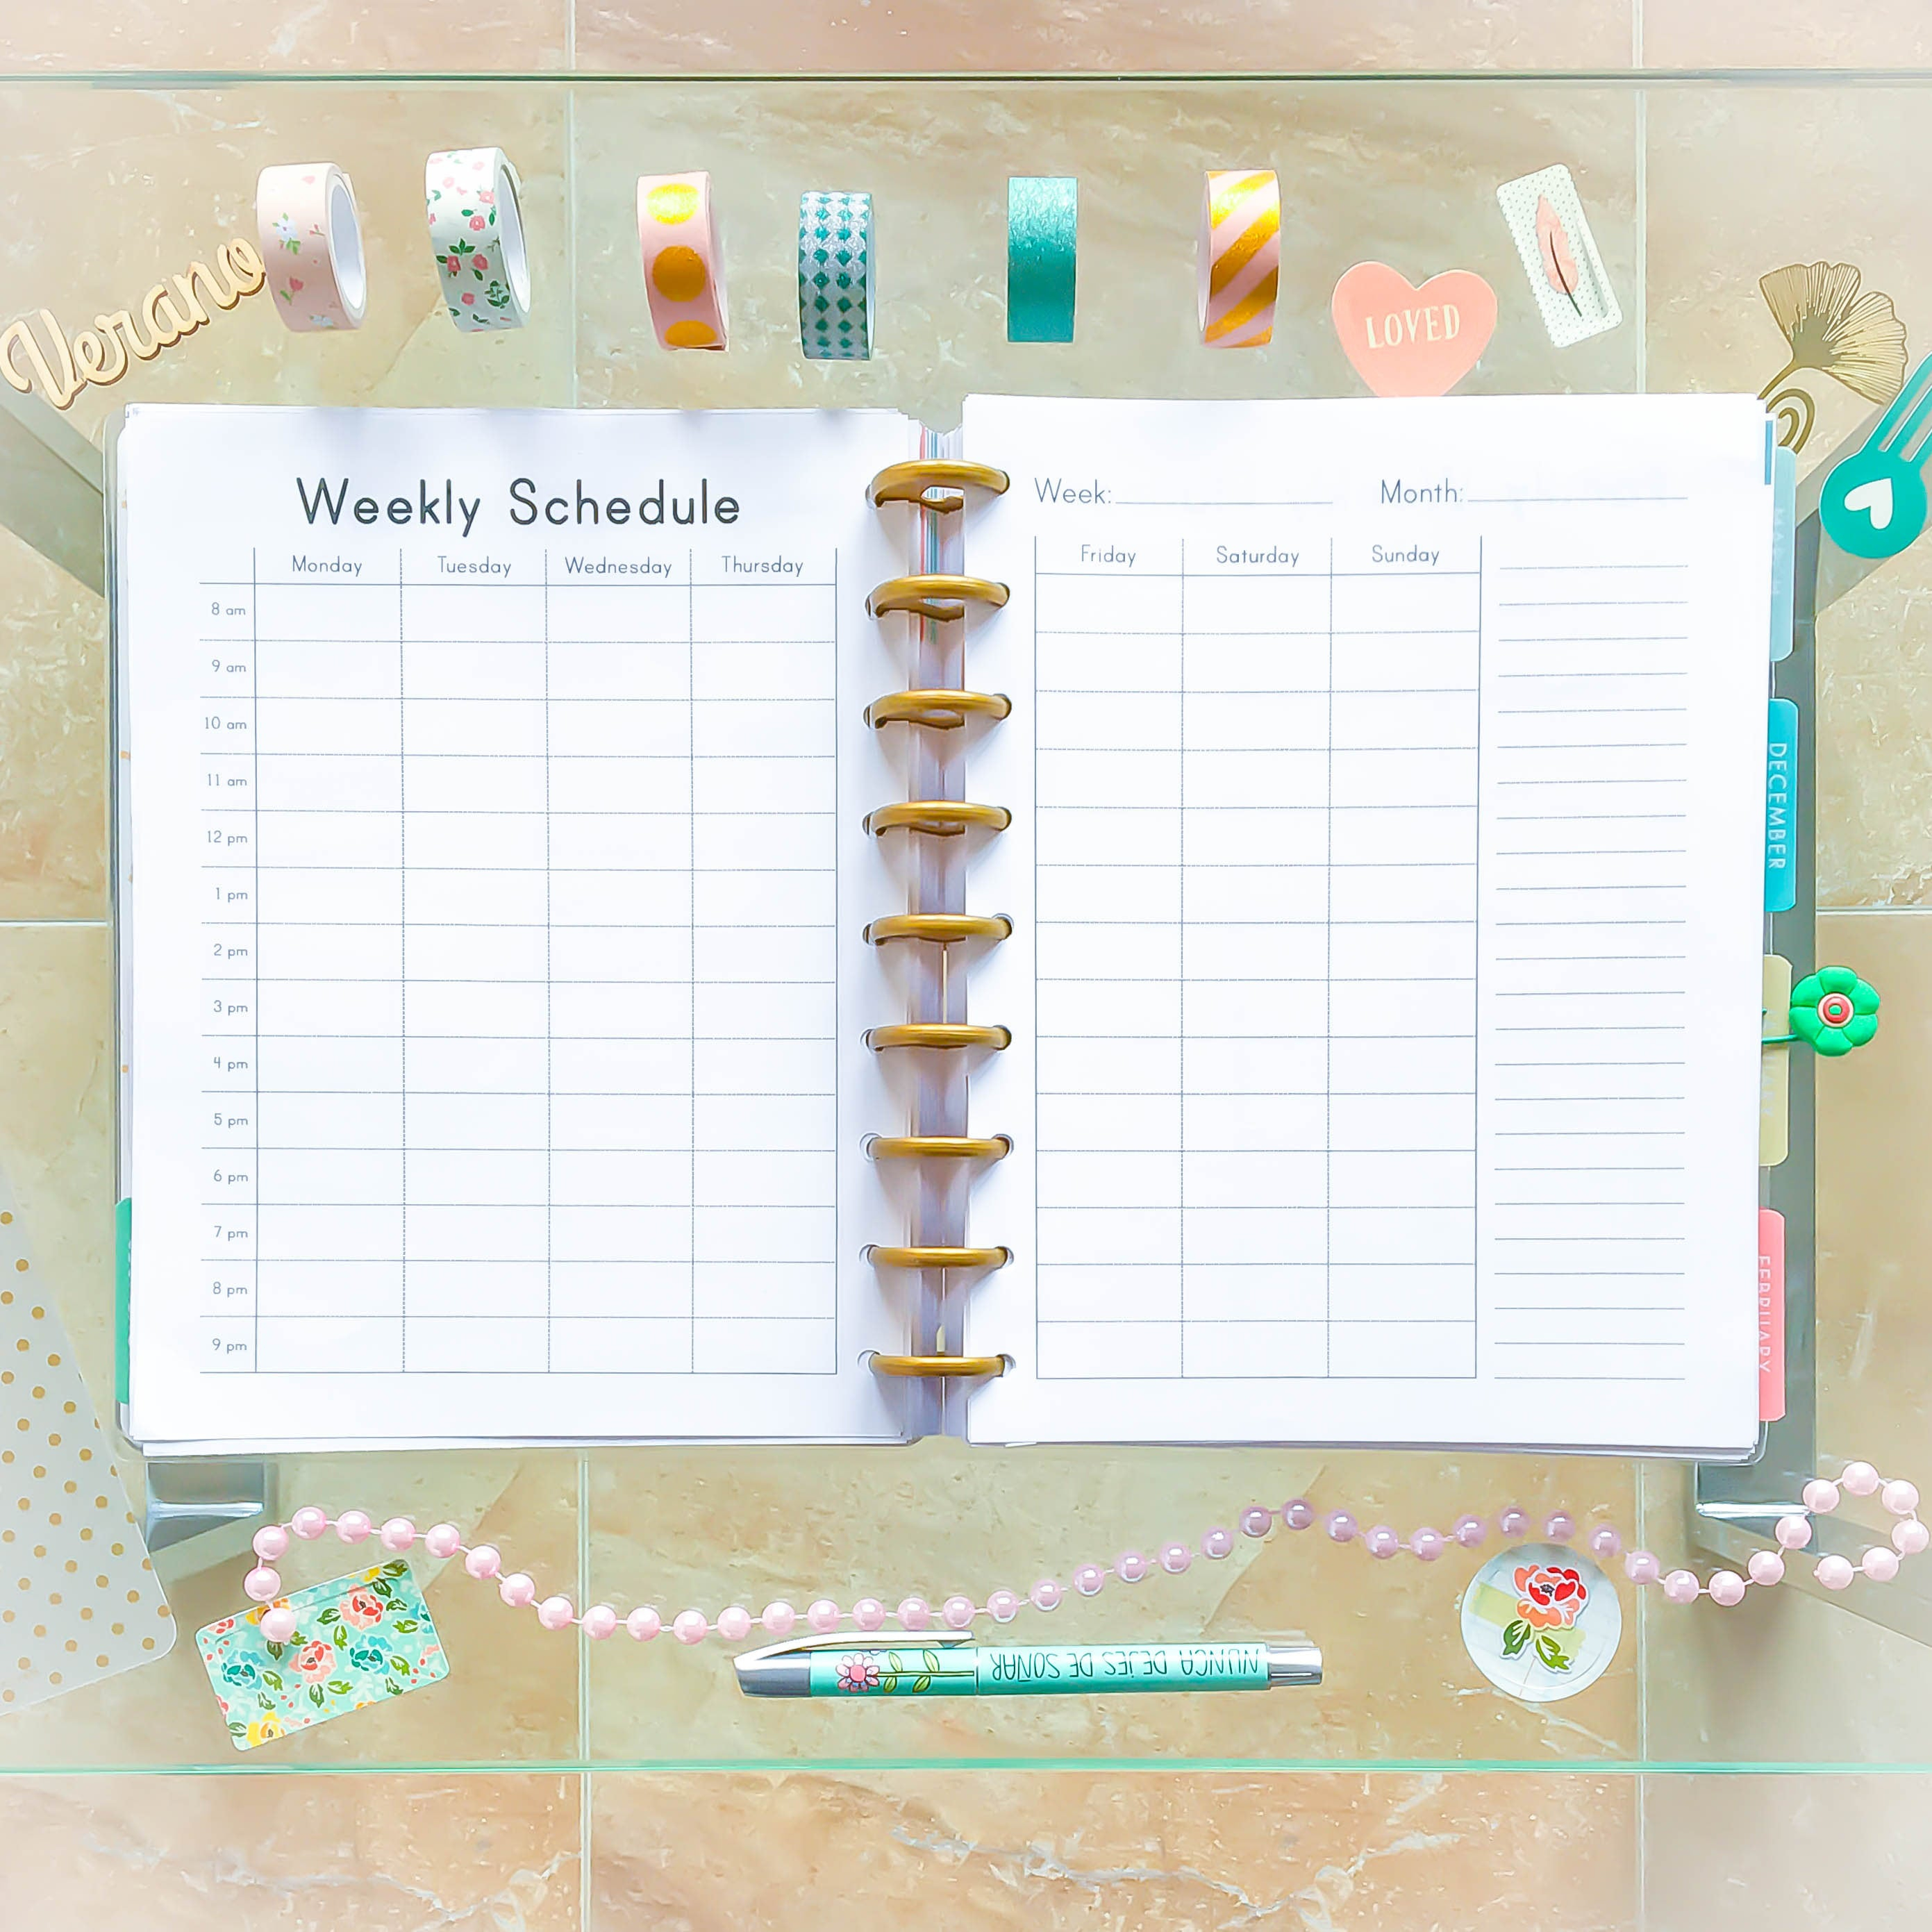 Happy Planner Hourly Weekly Schedule Printable Pdf Mambi in Hourly Weekly Schedule Pdf